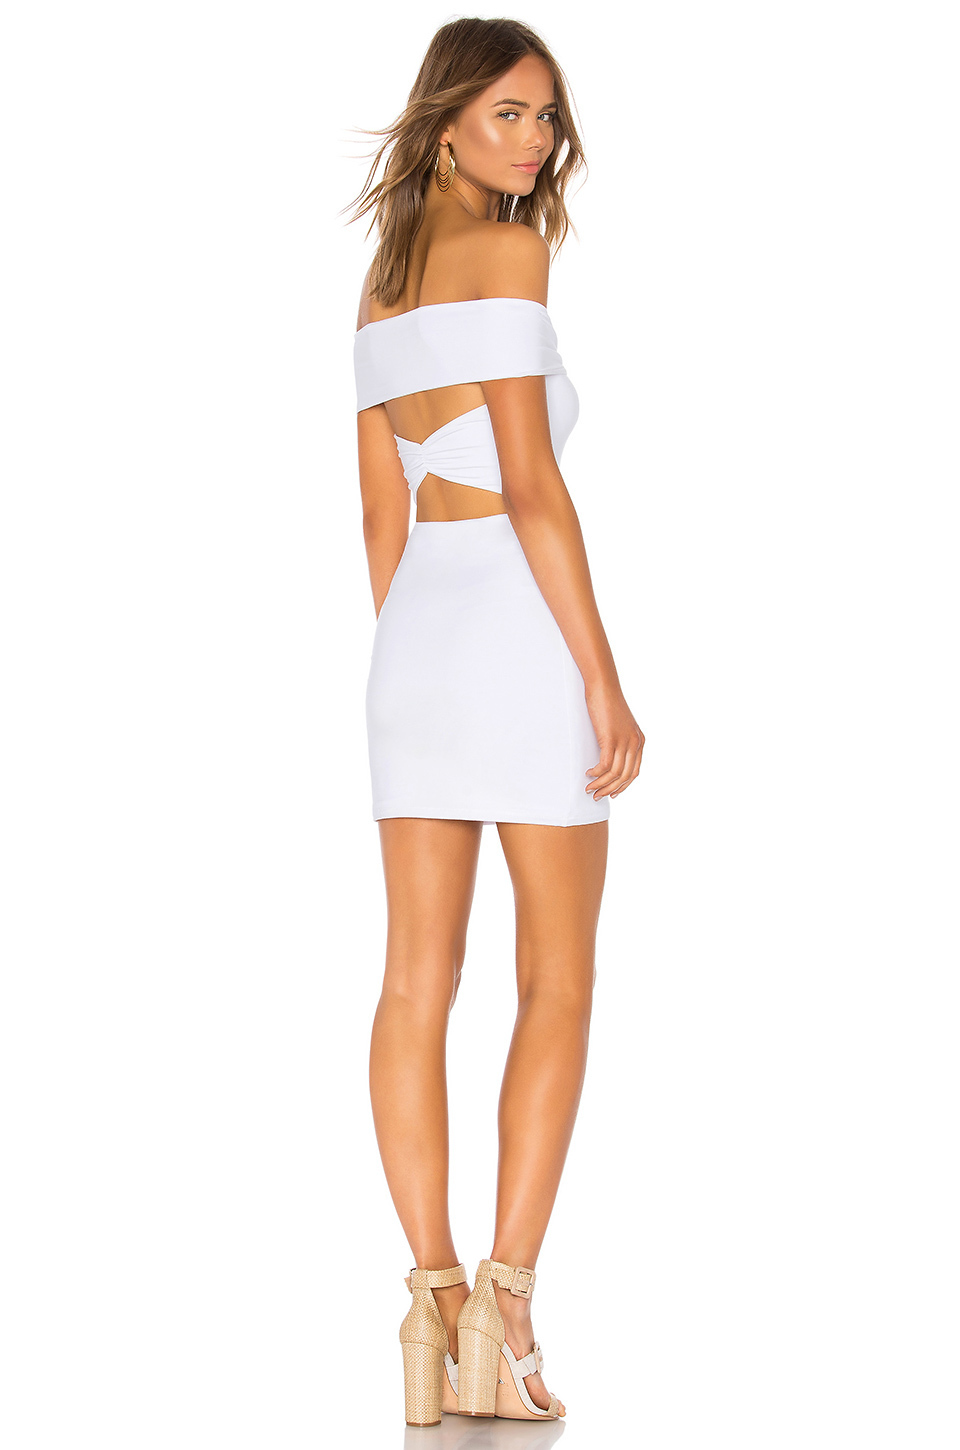 dress white tight bodycon ruched strap fold over sleeveless cut-out